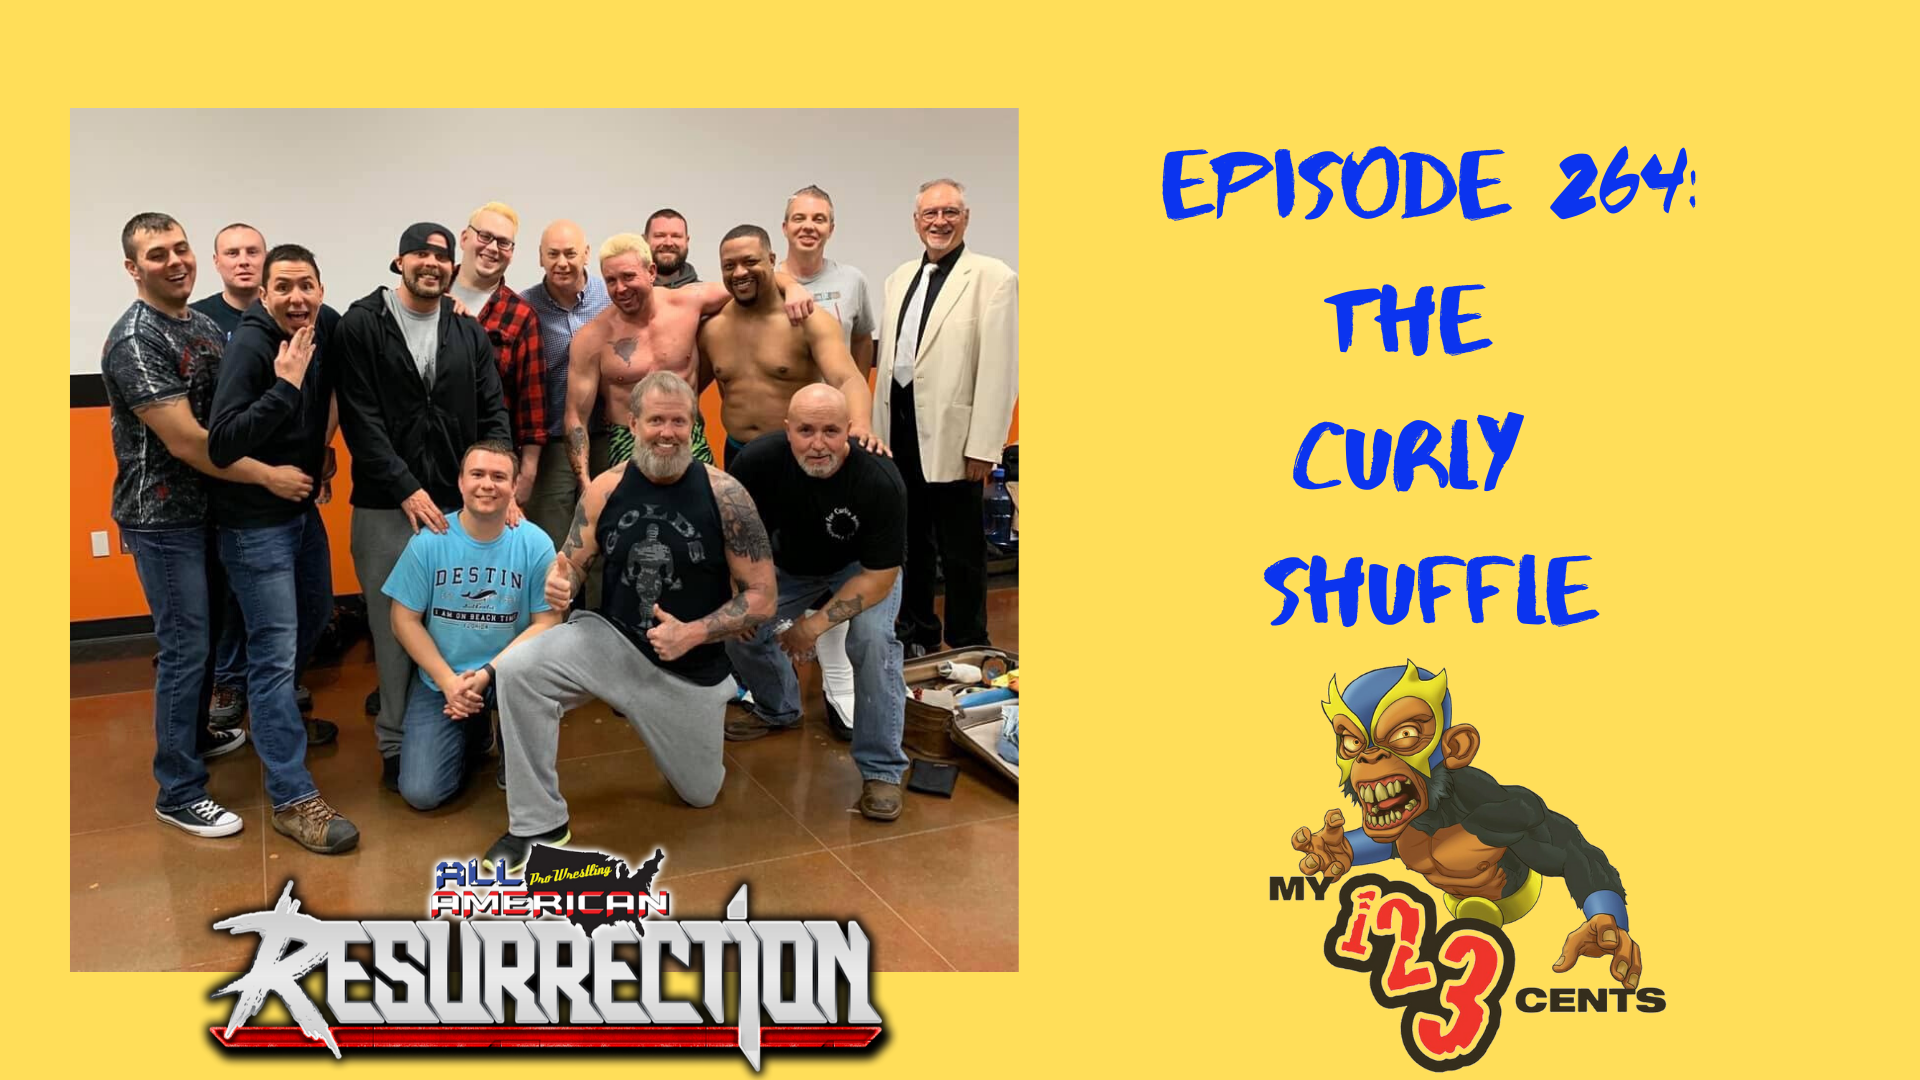 My 1-2-3 Cents Episode 264: The Curly Shuffle